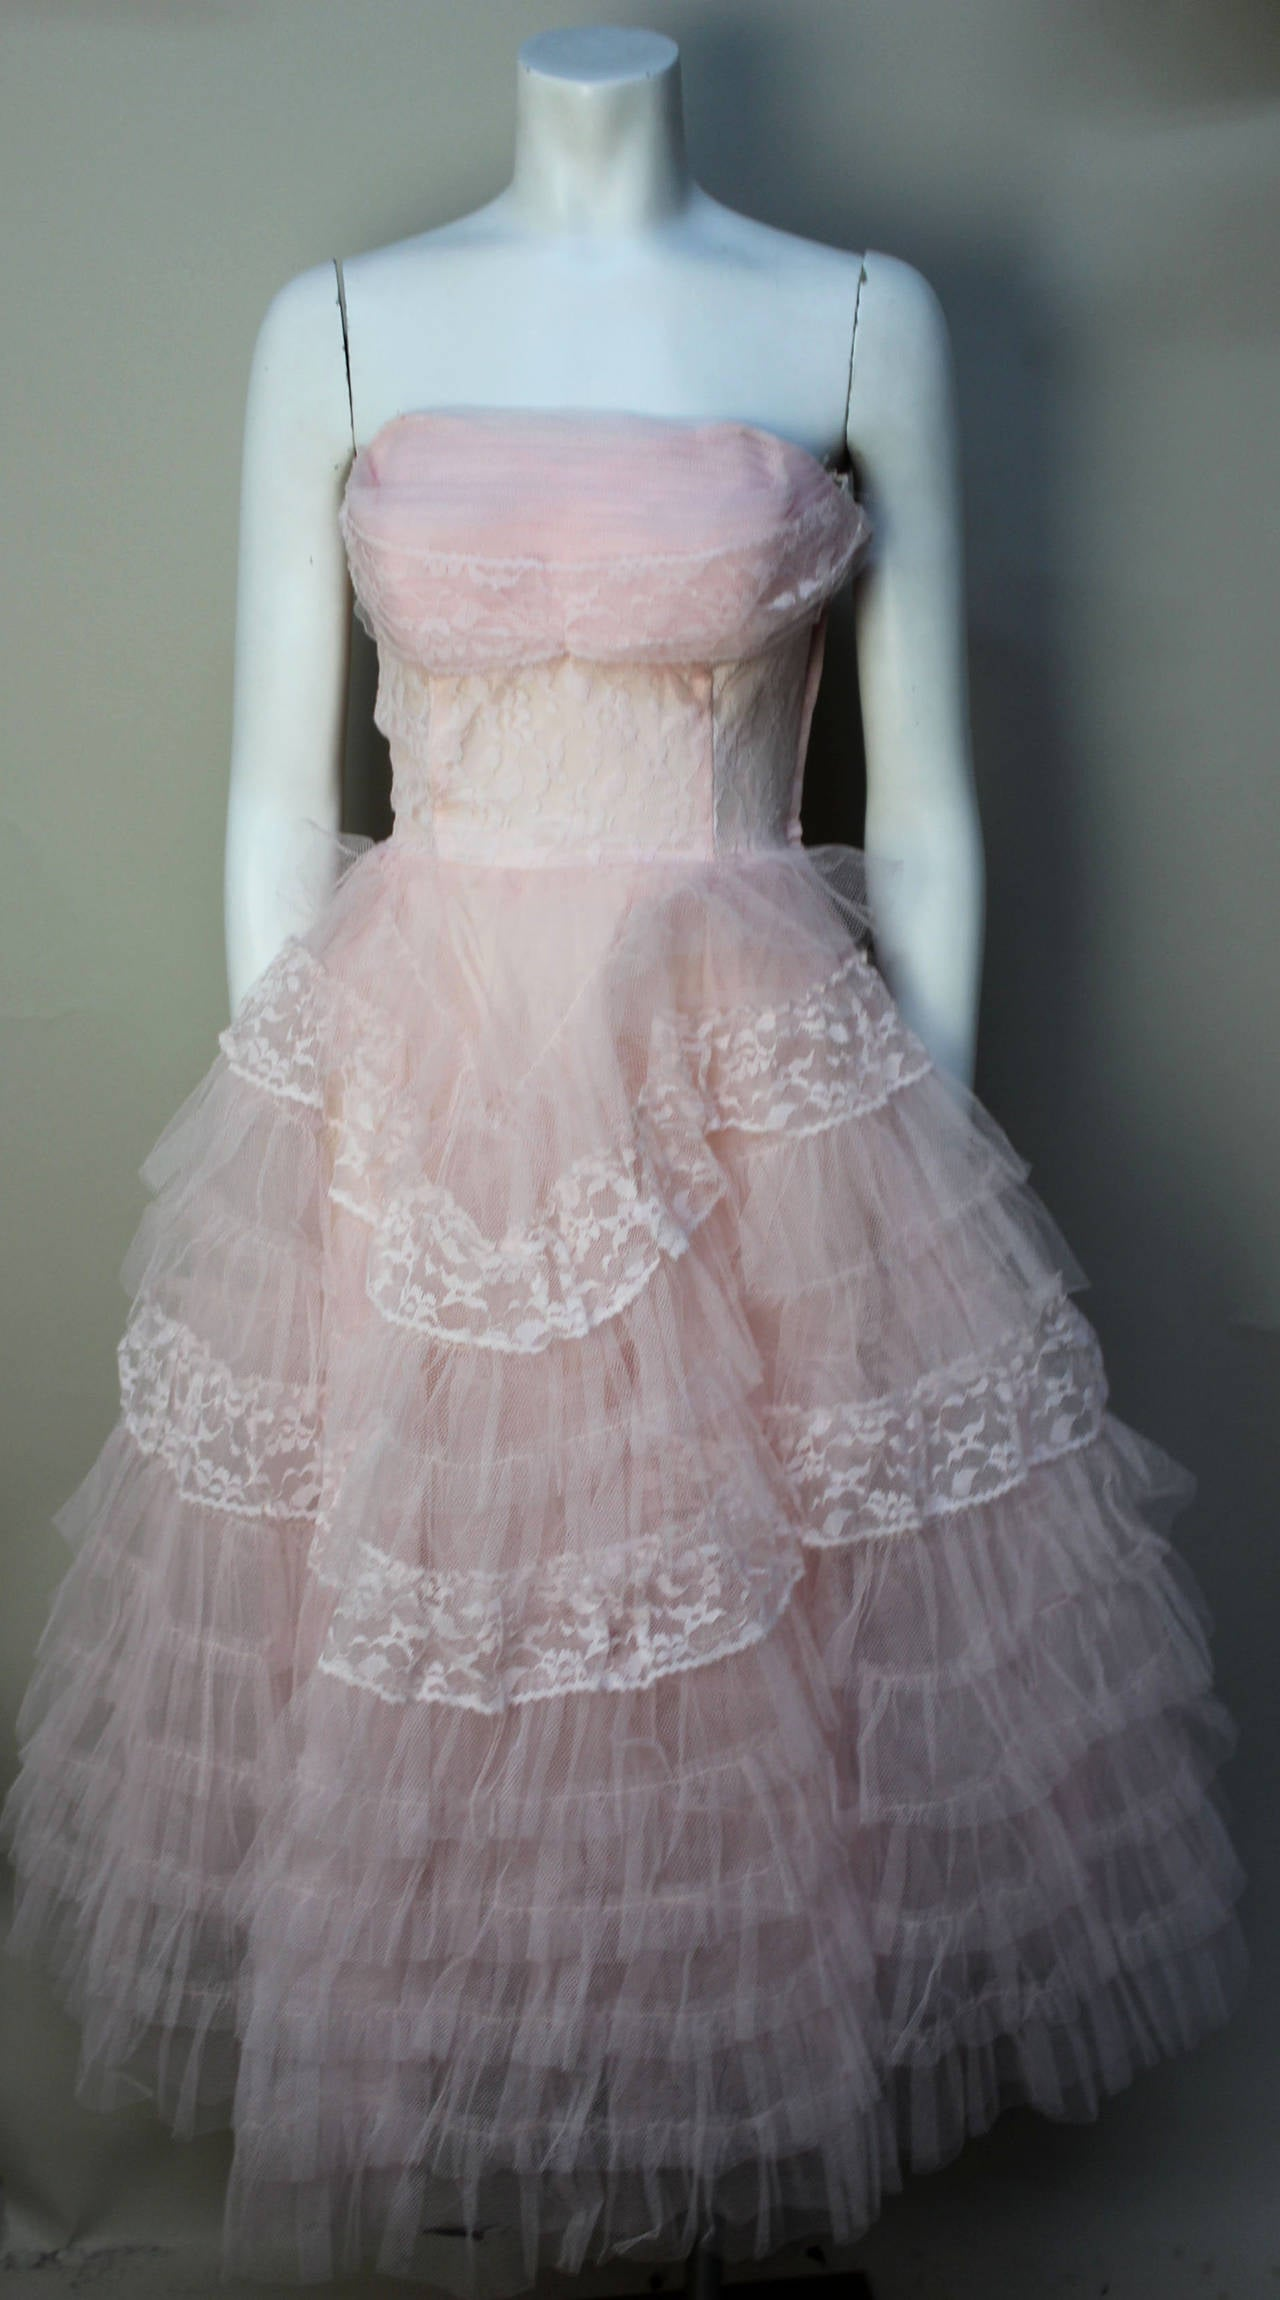 Gray Stunning Never Worn 1950s Pink Tulle Evening Dress with Lace Bolero For Sale